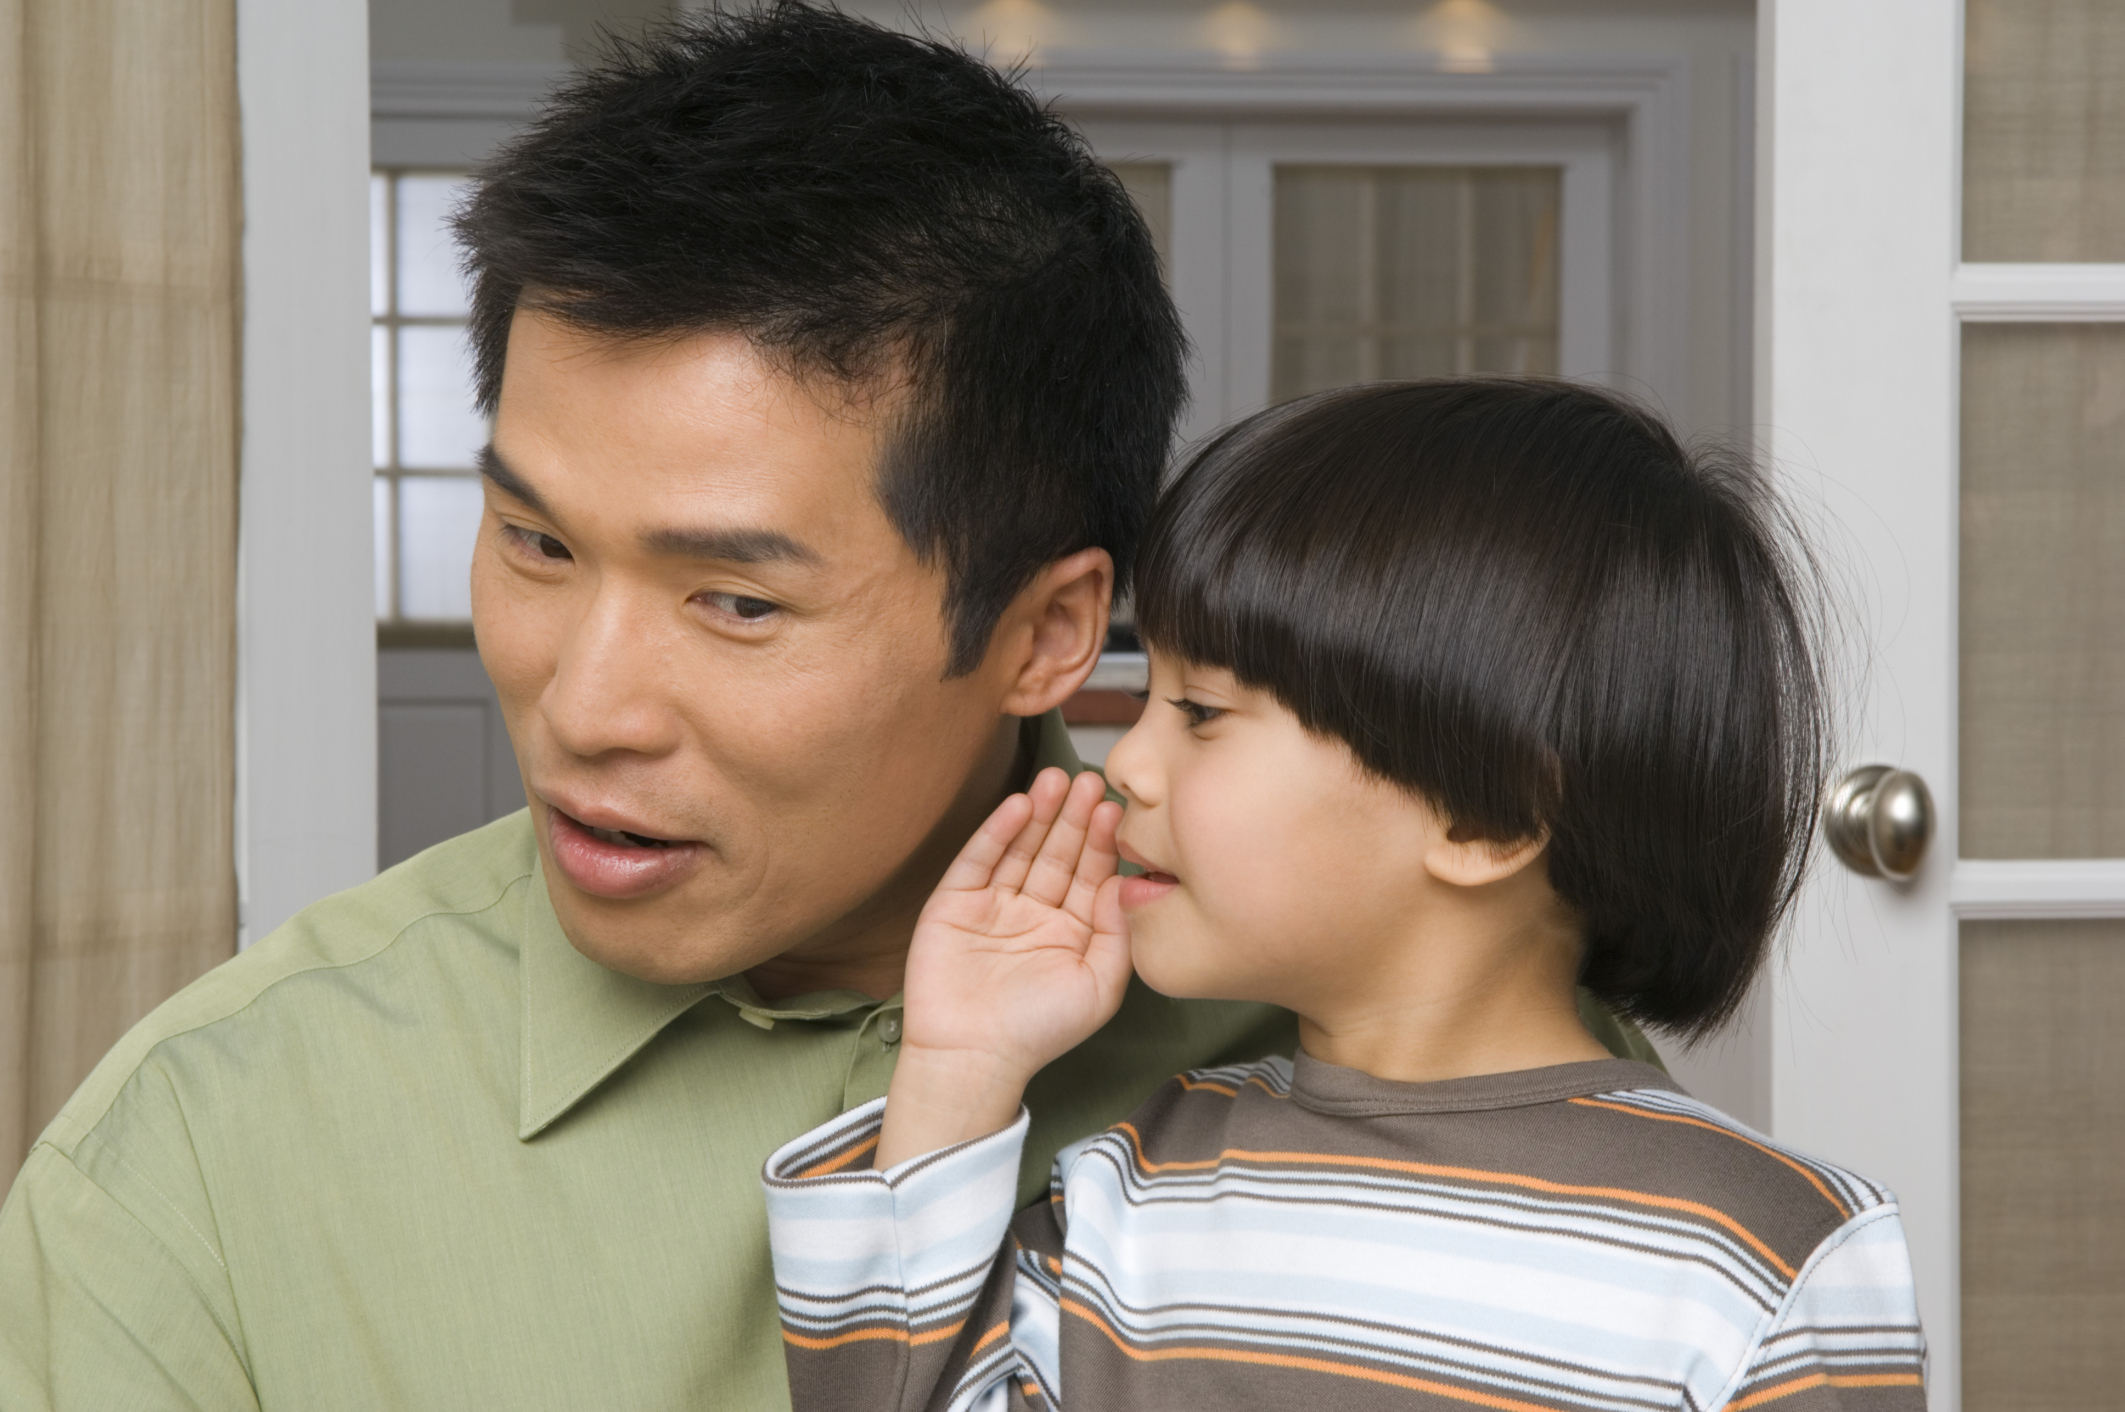 Son whispering into father's ear